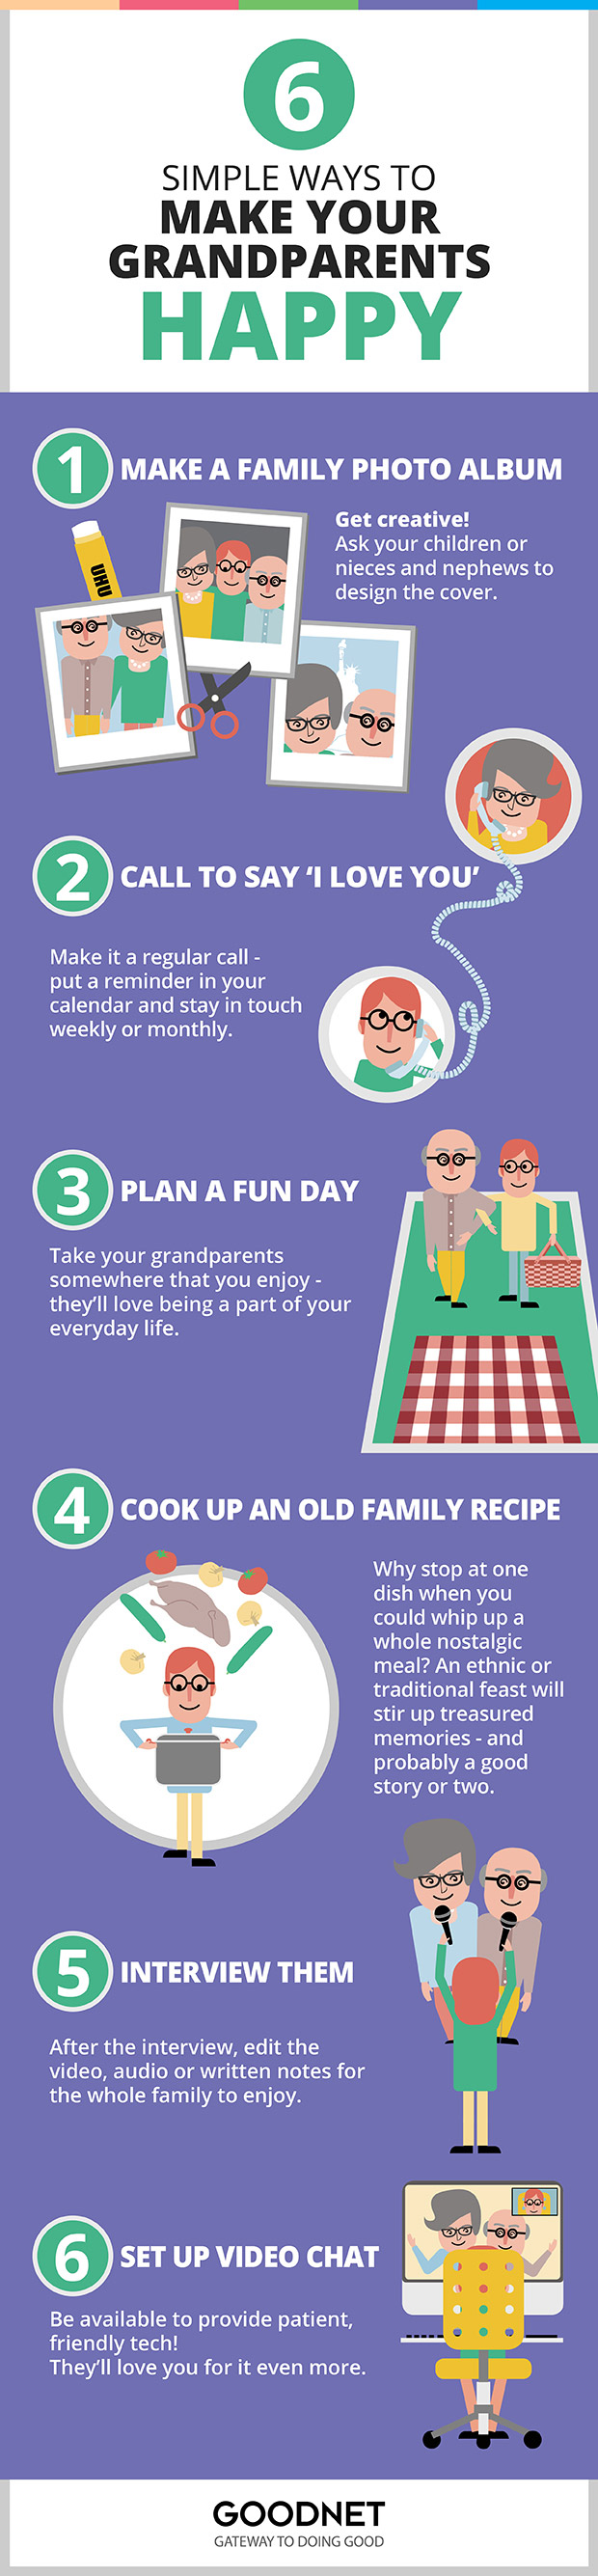 6 Simple Ways to Make Your Grandparents Happy